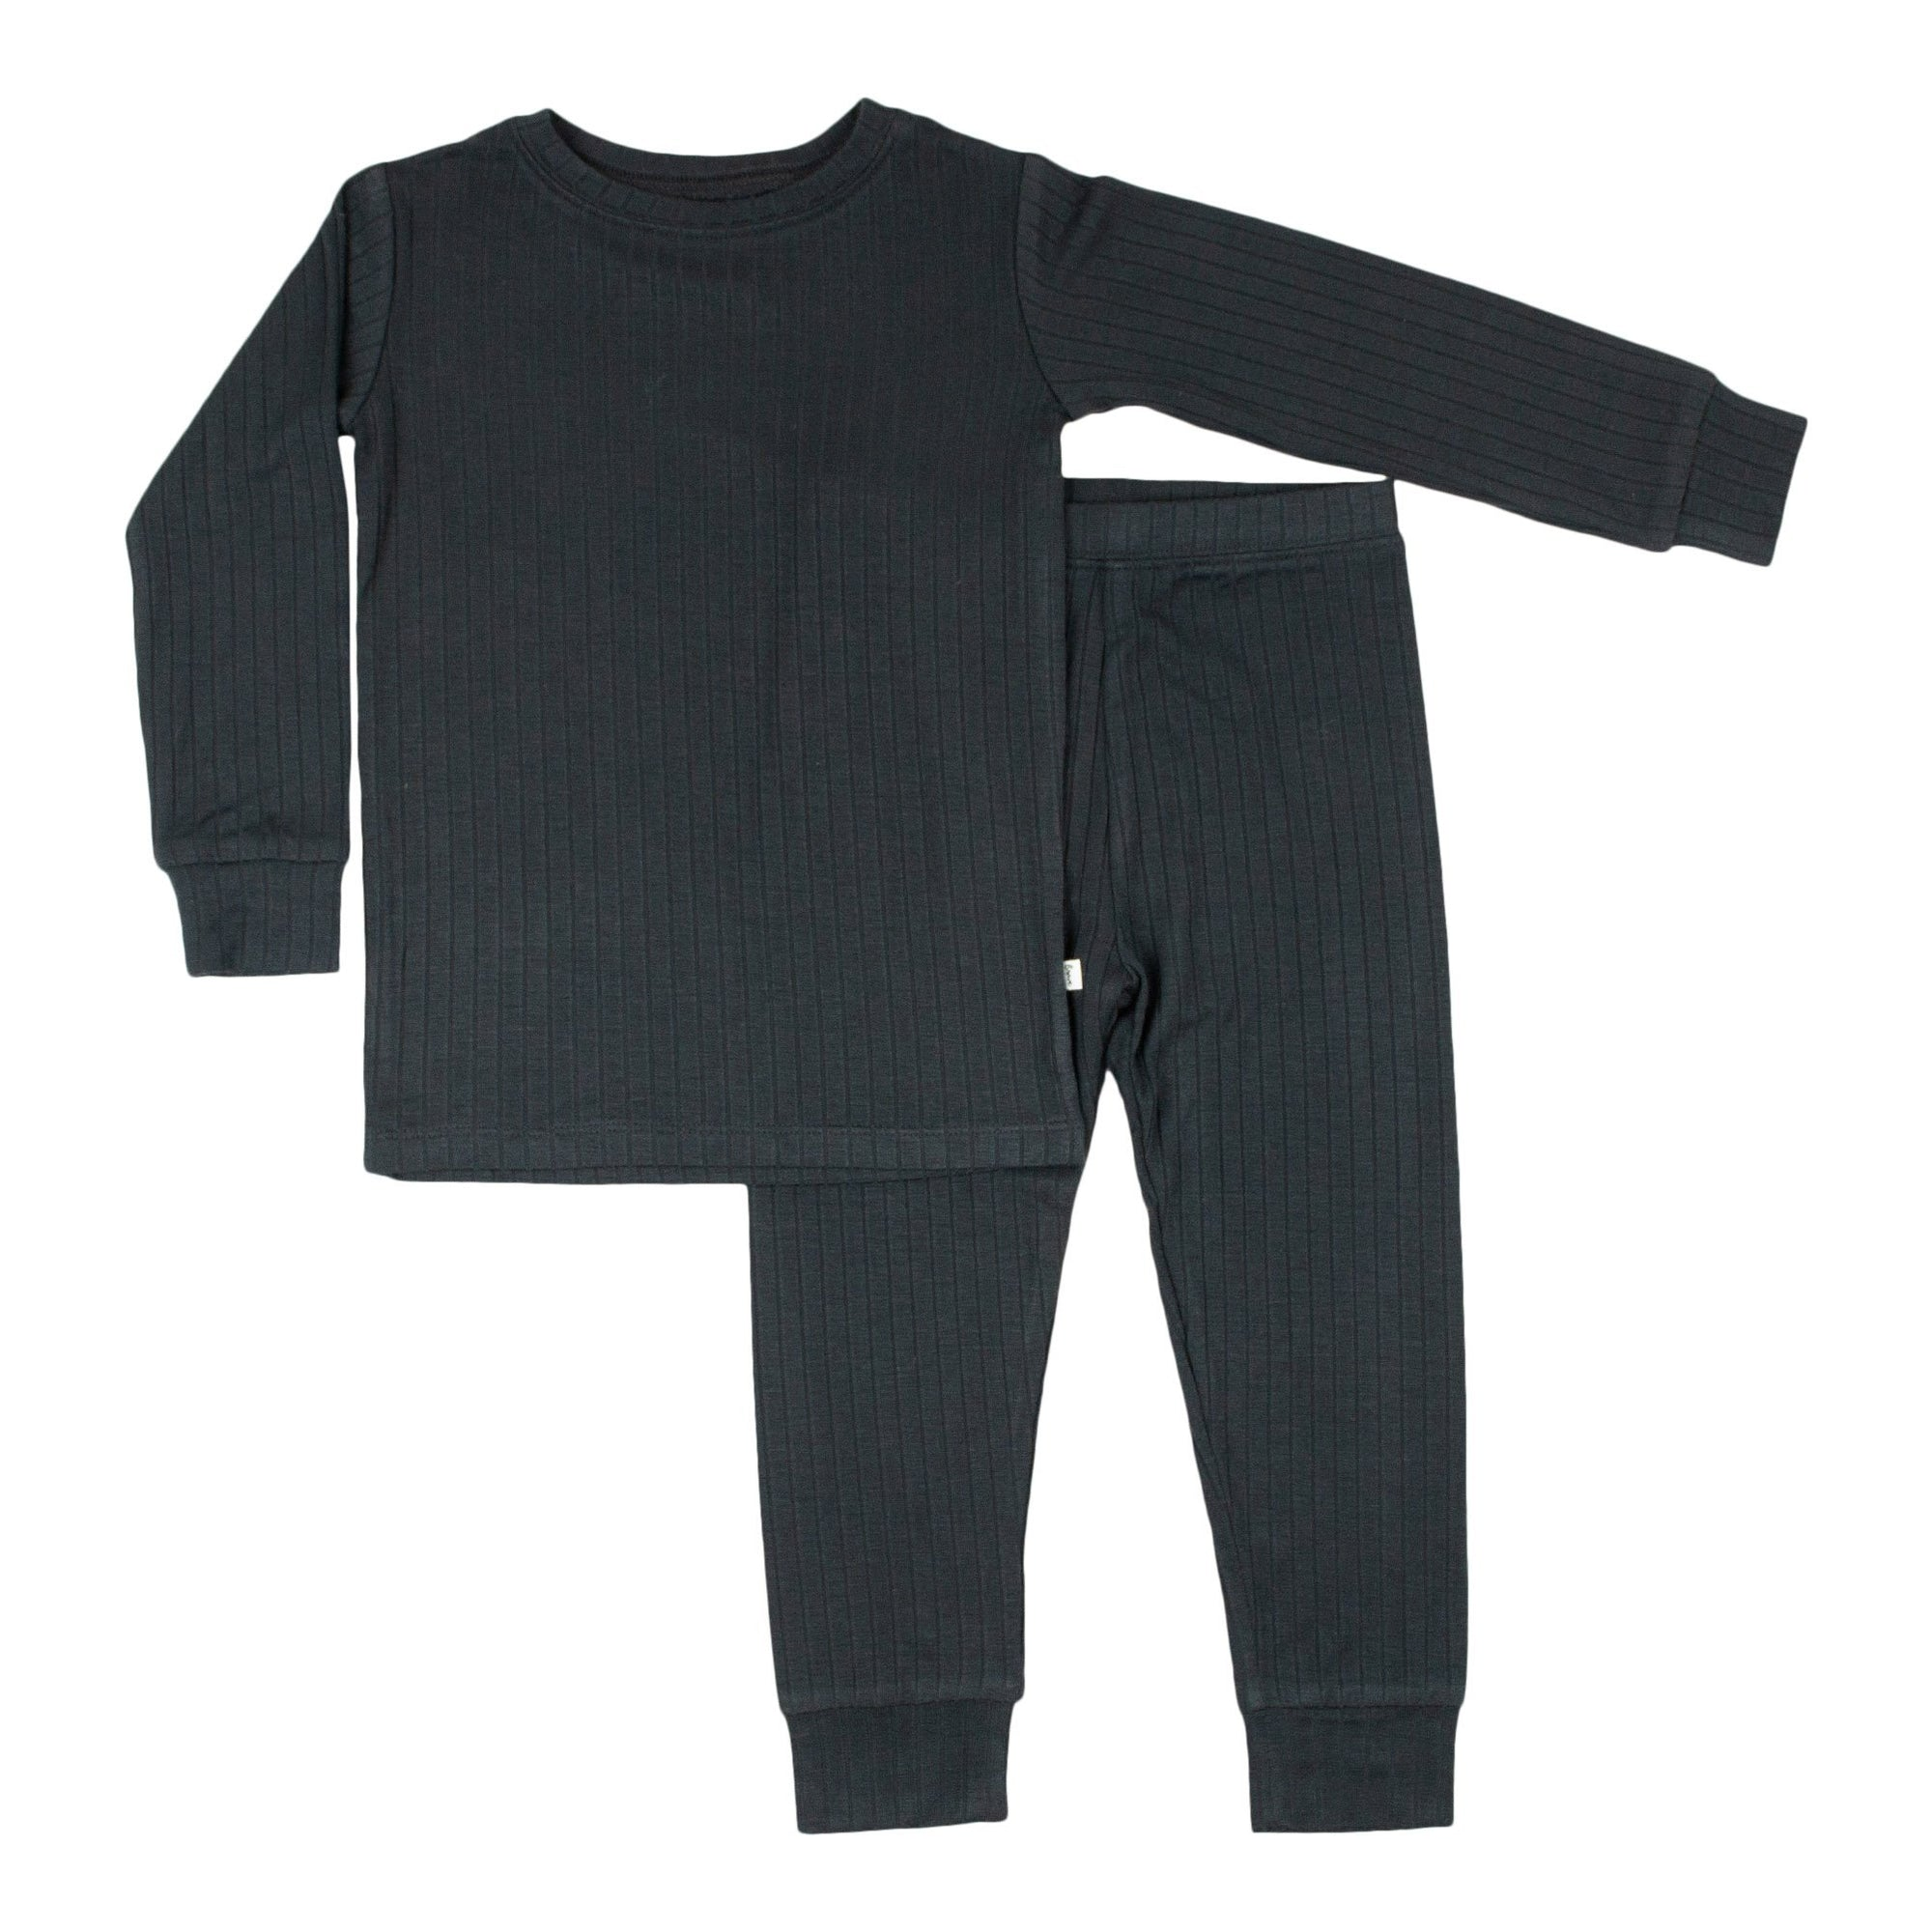 Antique Black Ribbed Pajama Set